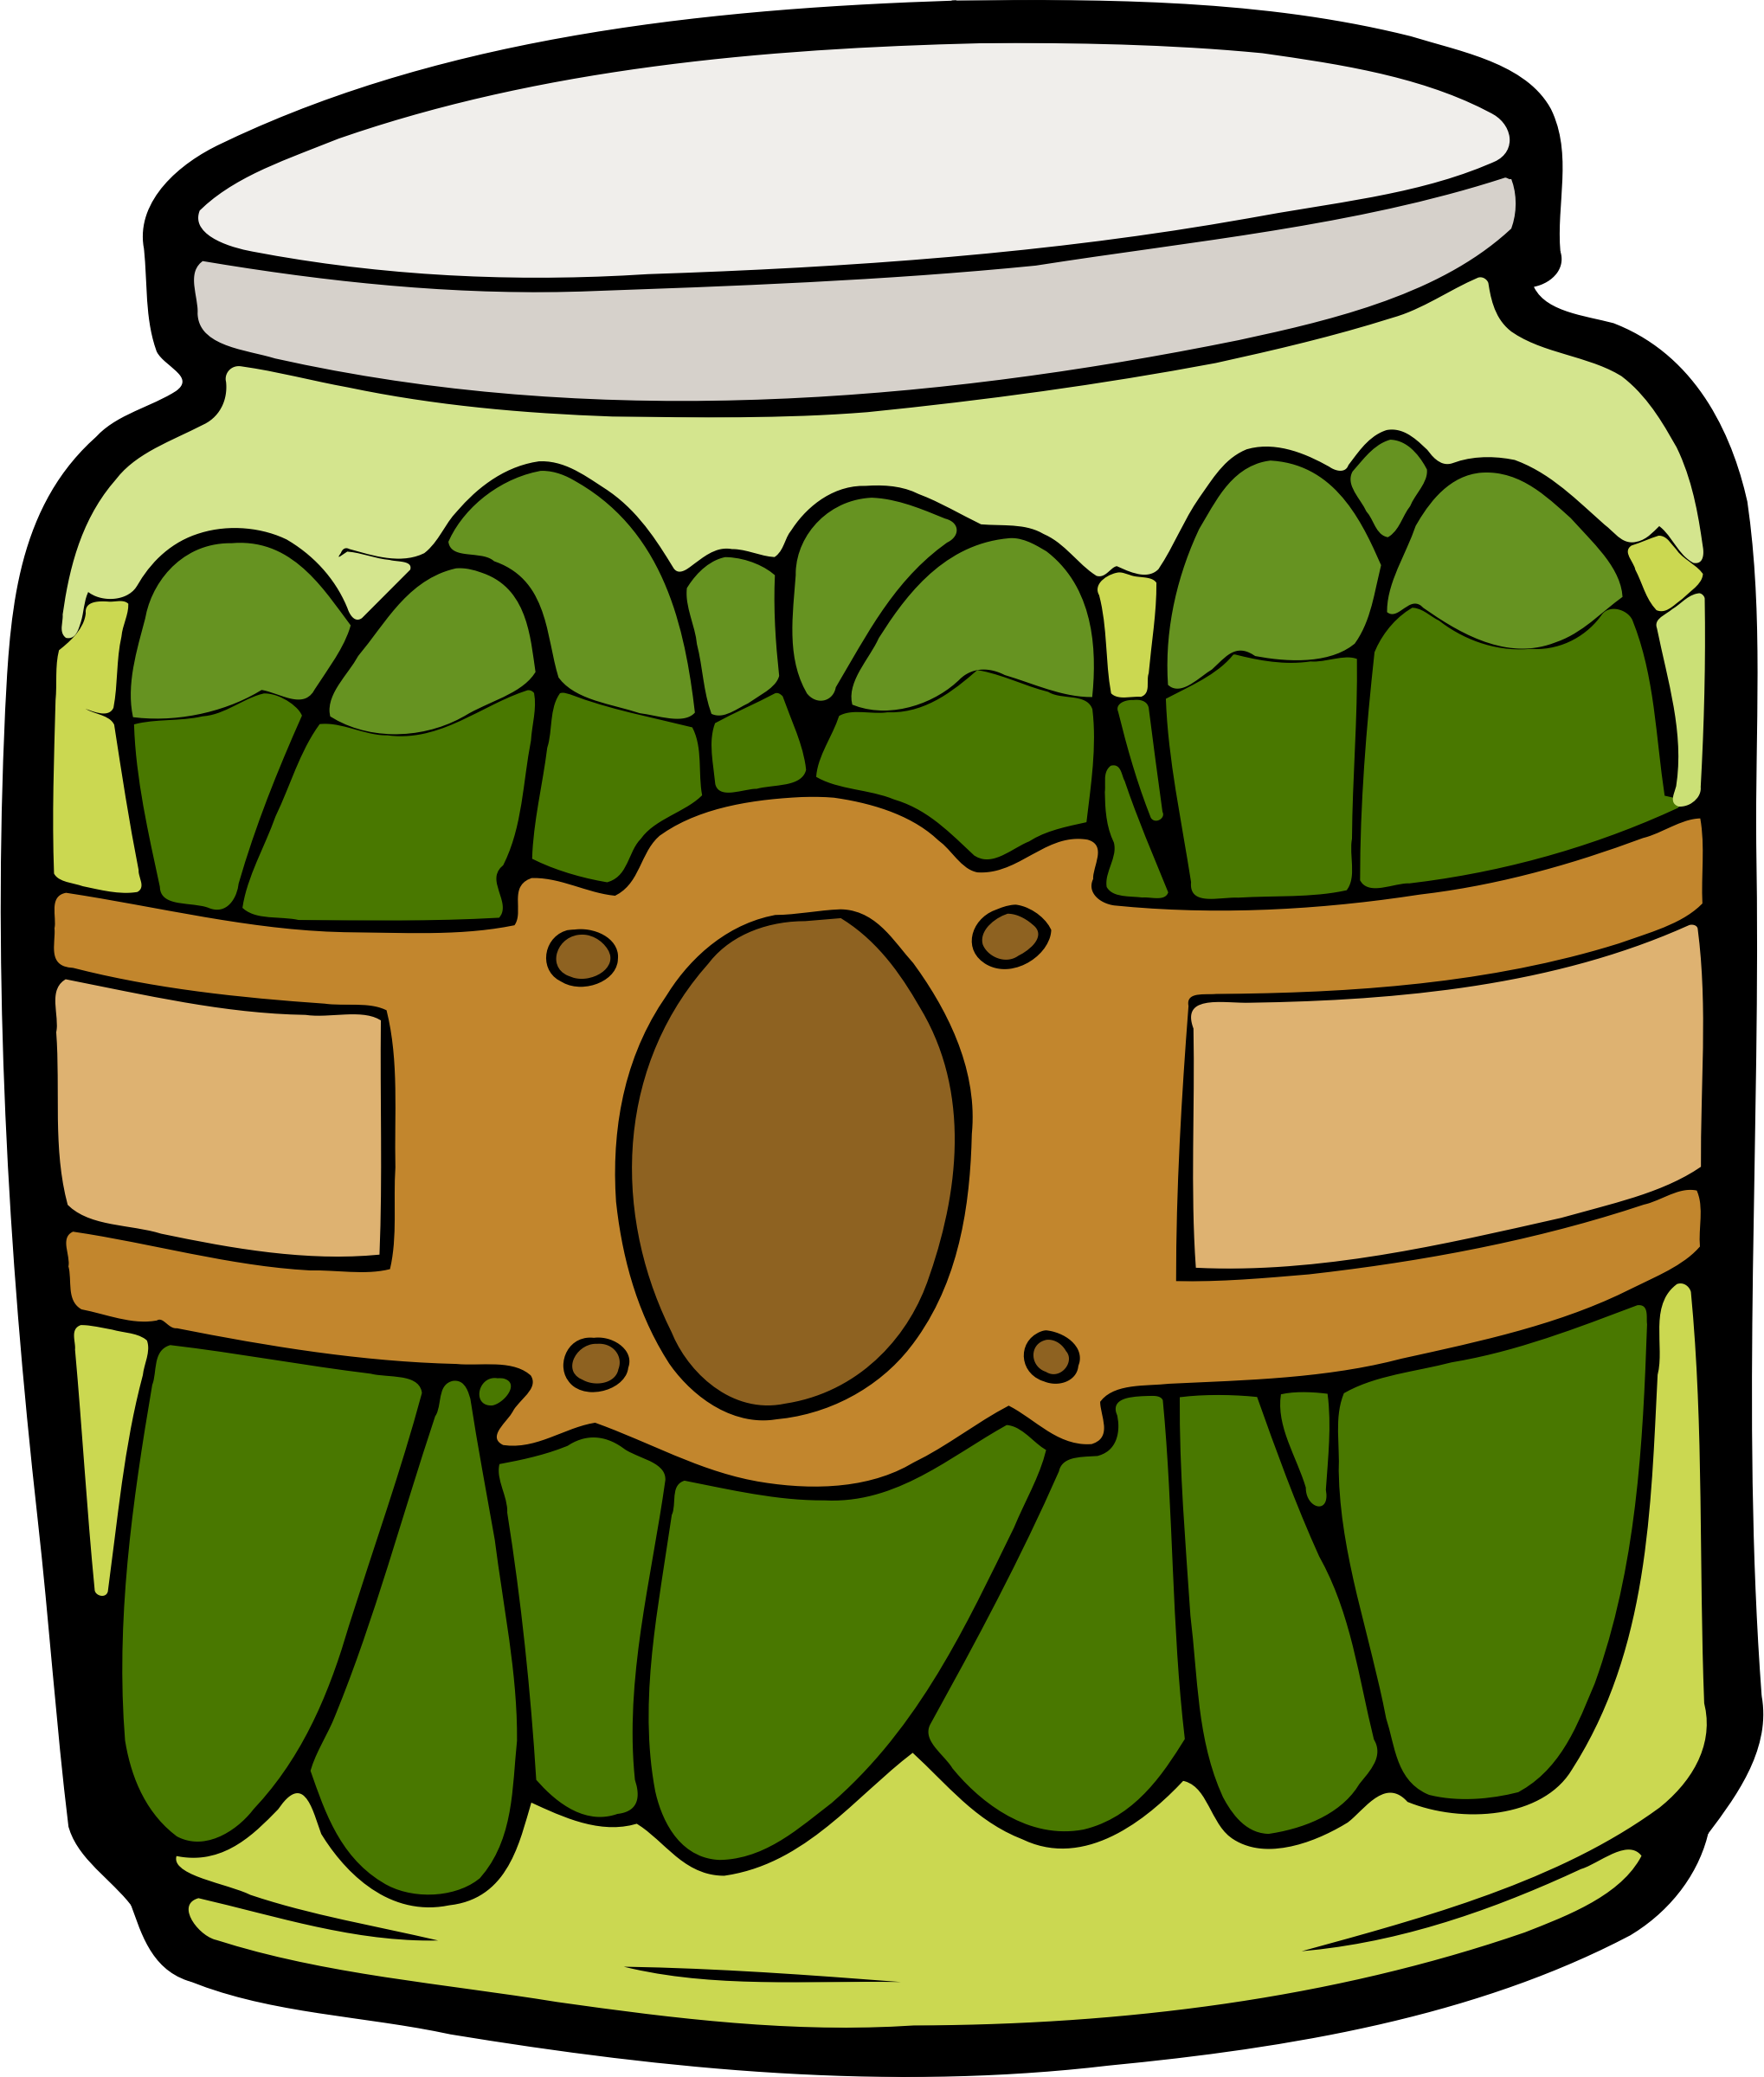 image royalty free library Pickles clipart. In a jar big.